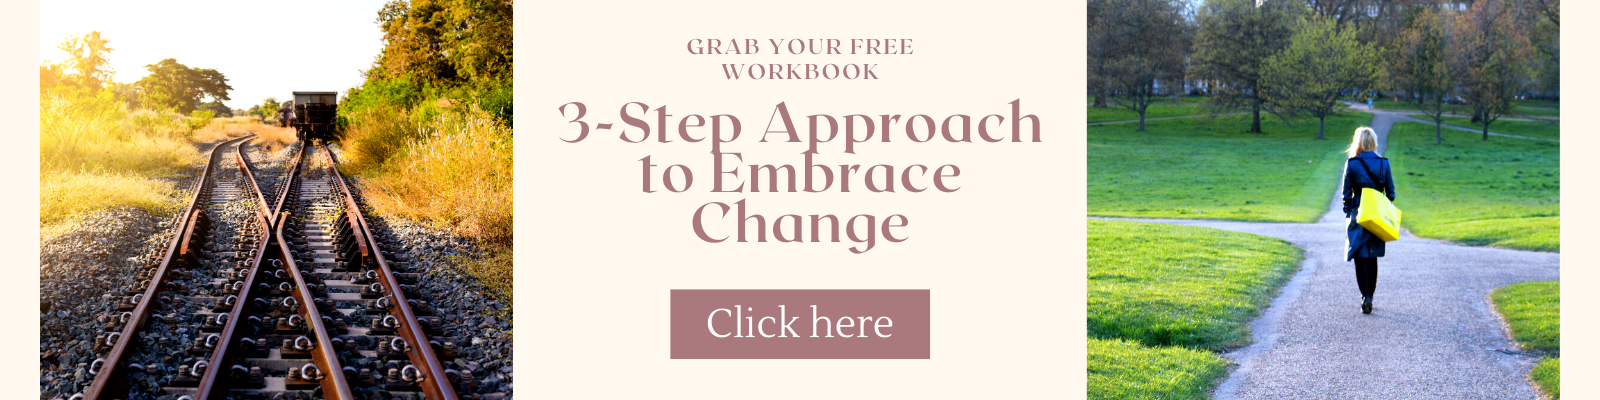 3 step approach to embrace change opt-in (2)